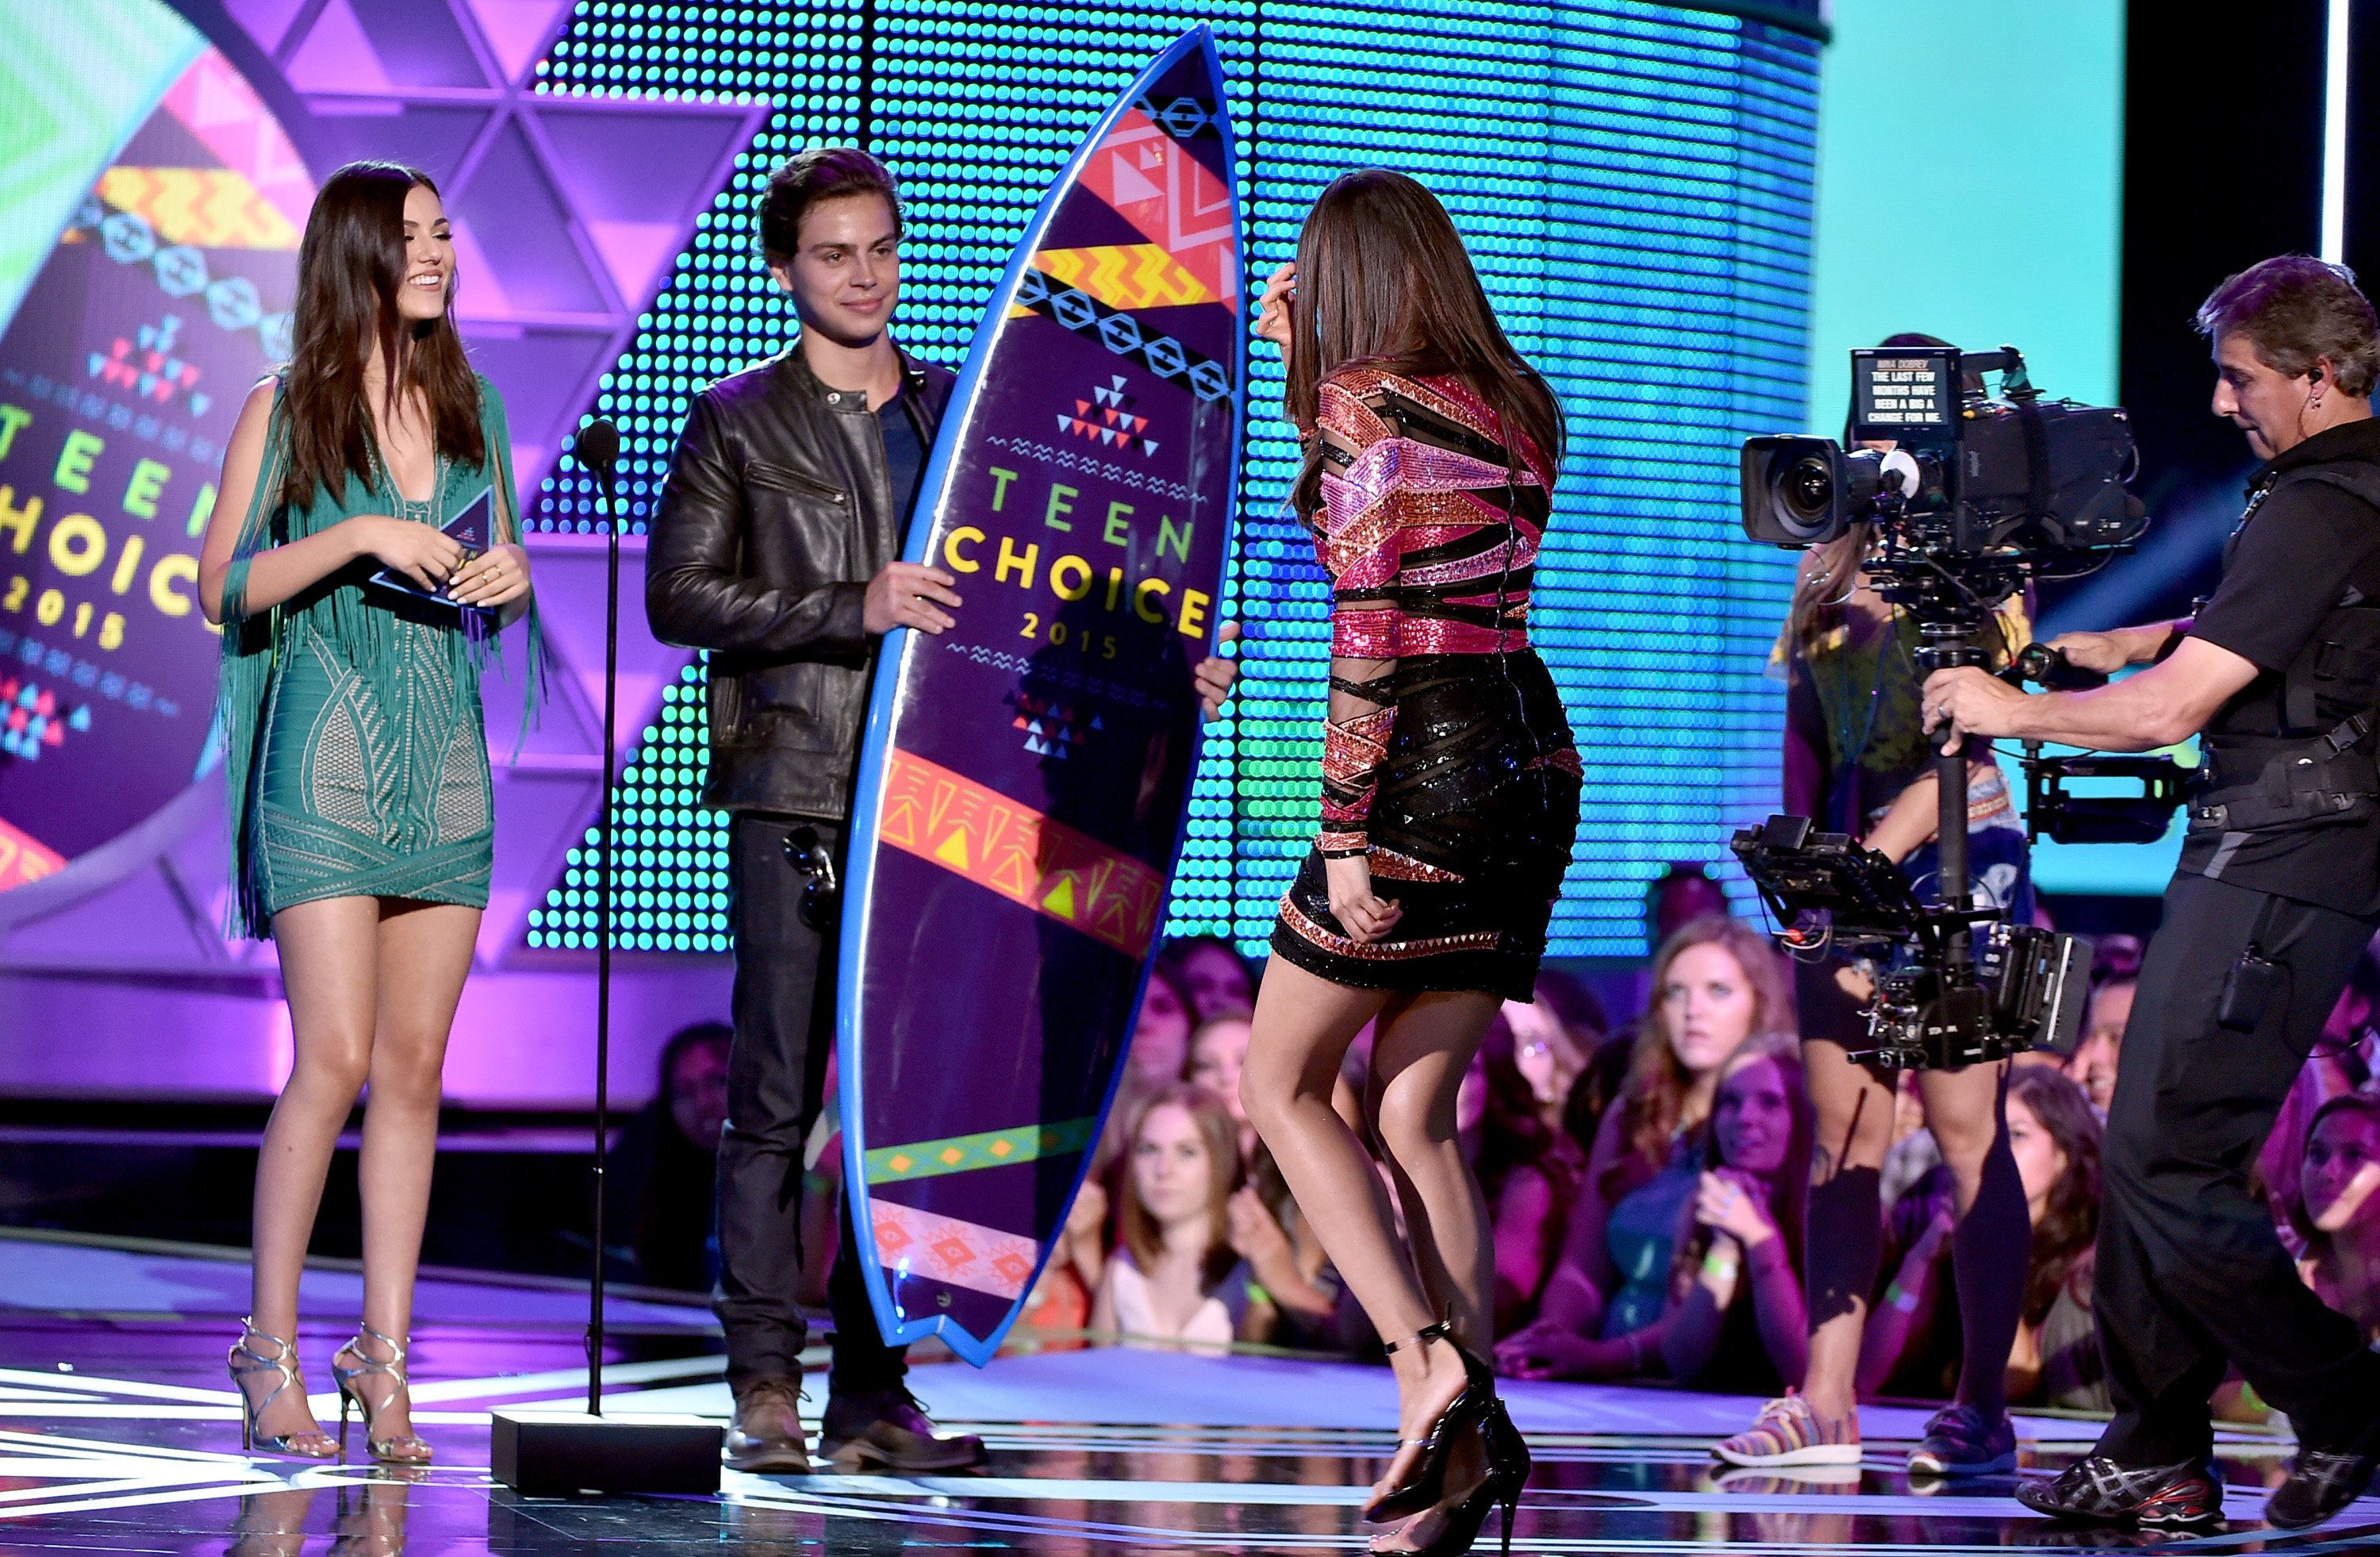 LOS ANGELES, CA - AUGUST 16:  (L-R) Actors Victoria Justice and Jake T. Austin present actress Nina Dobrev with the Choice TV Actress: Fantasy/Sci-Fi Award for 'Vampire Diaries' onstage during the Teen Choice Awards 2015 at the USC Galen Center on August 16, 2015 in Los Angeles, California.  (Photo by Kevin Winter/Getty Images)